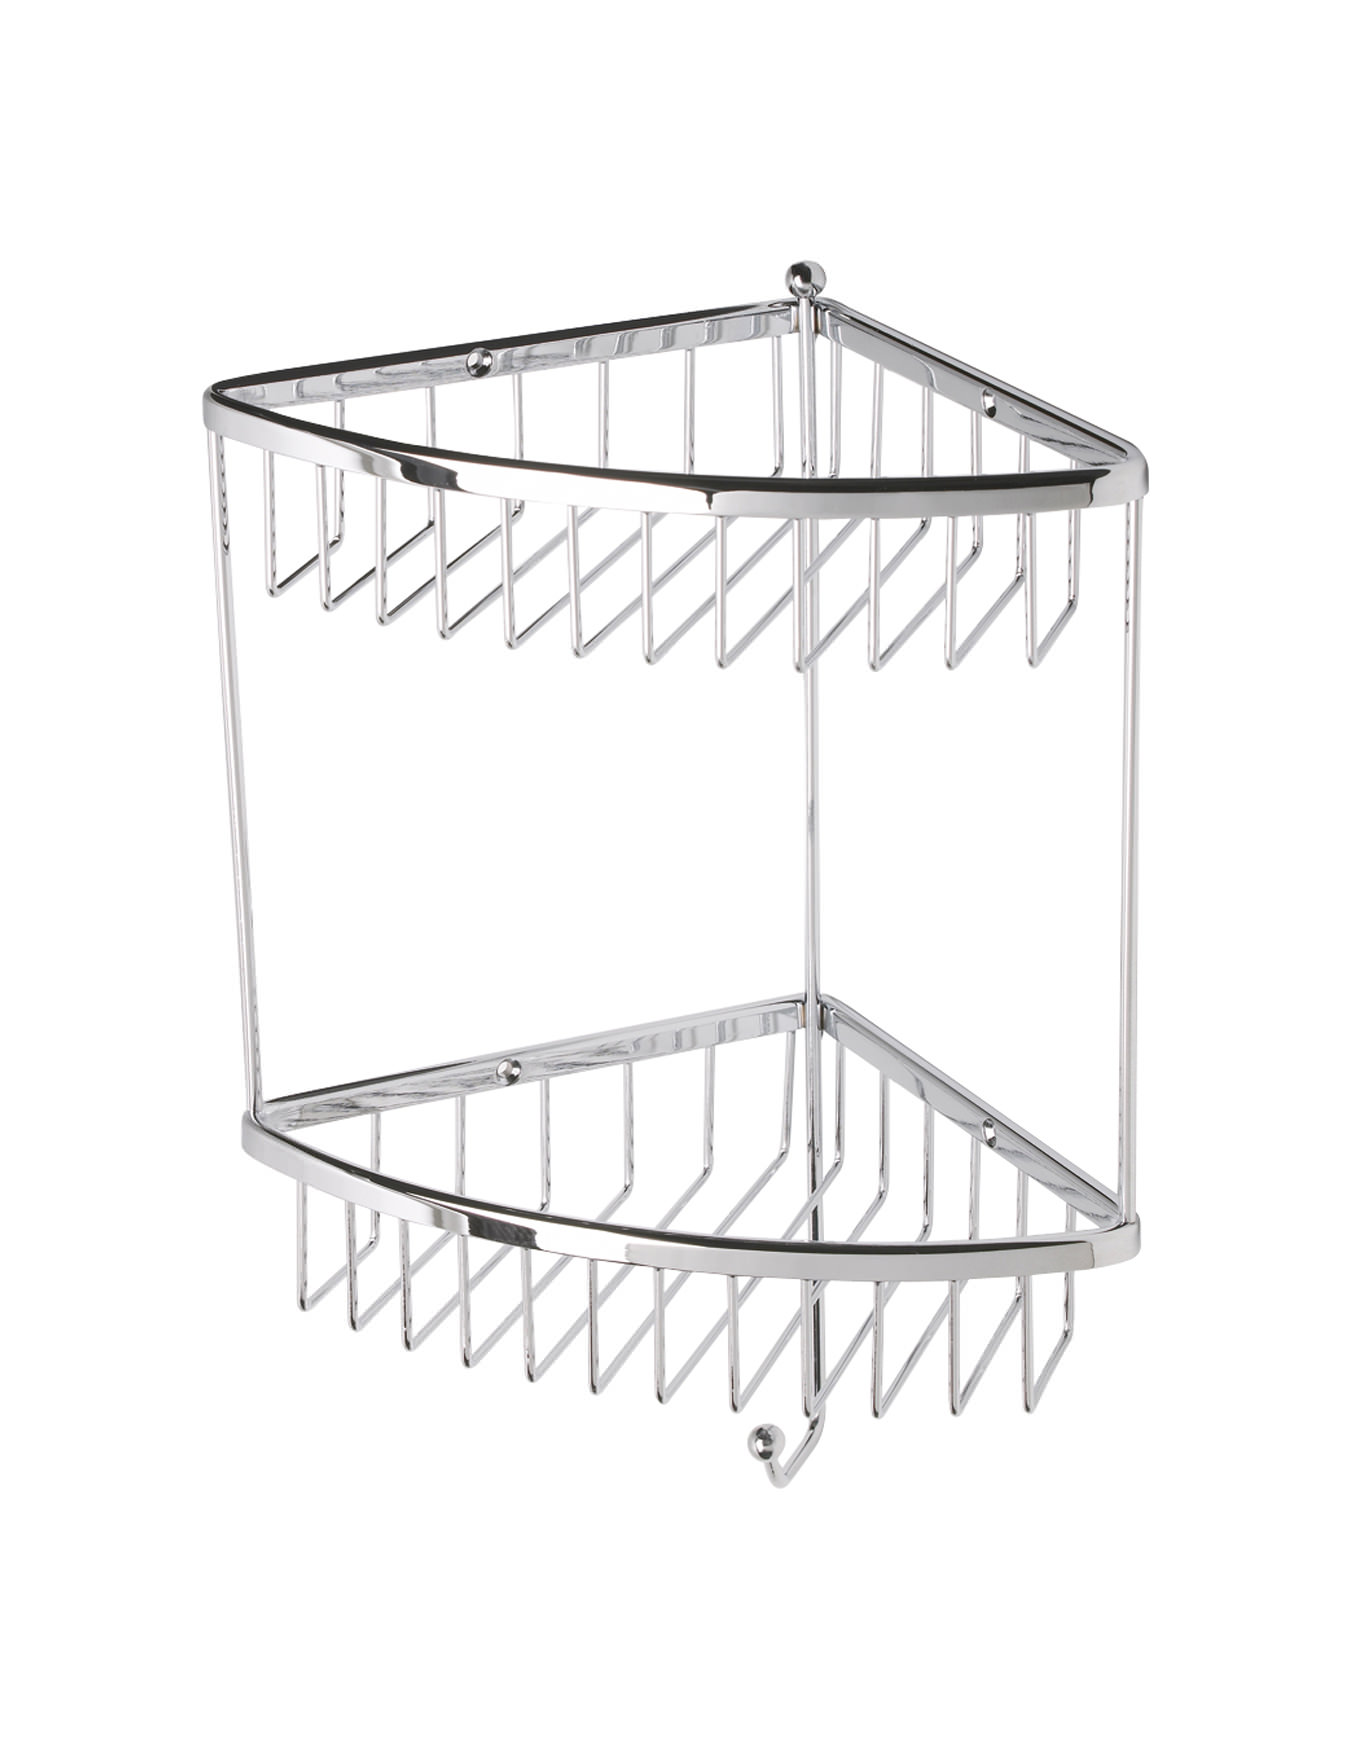 Roper Rhodes Madison Double Corner Basket 190mm Wide